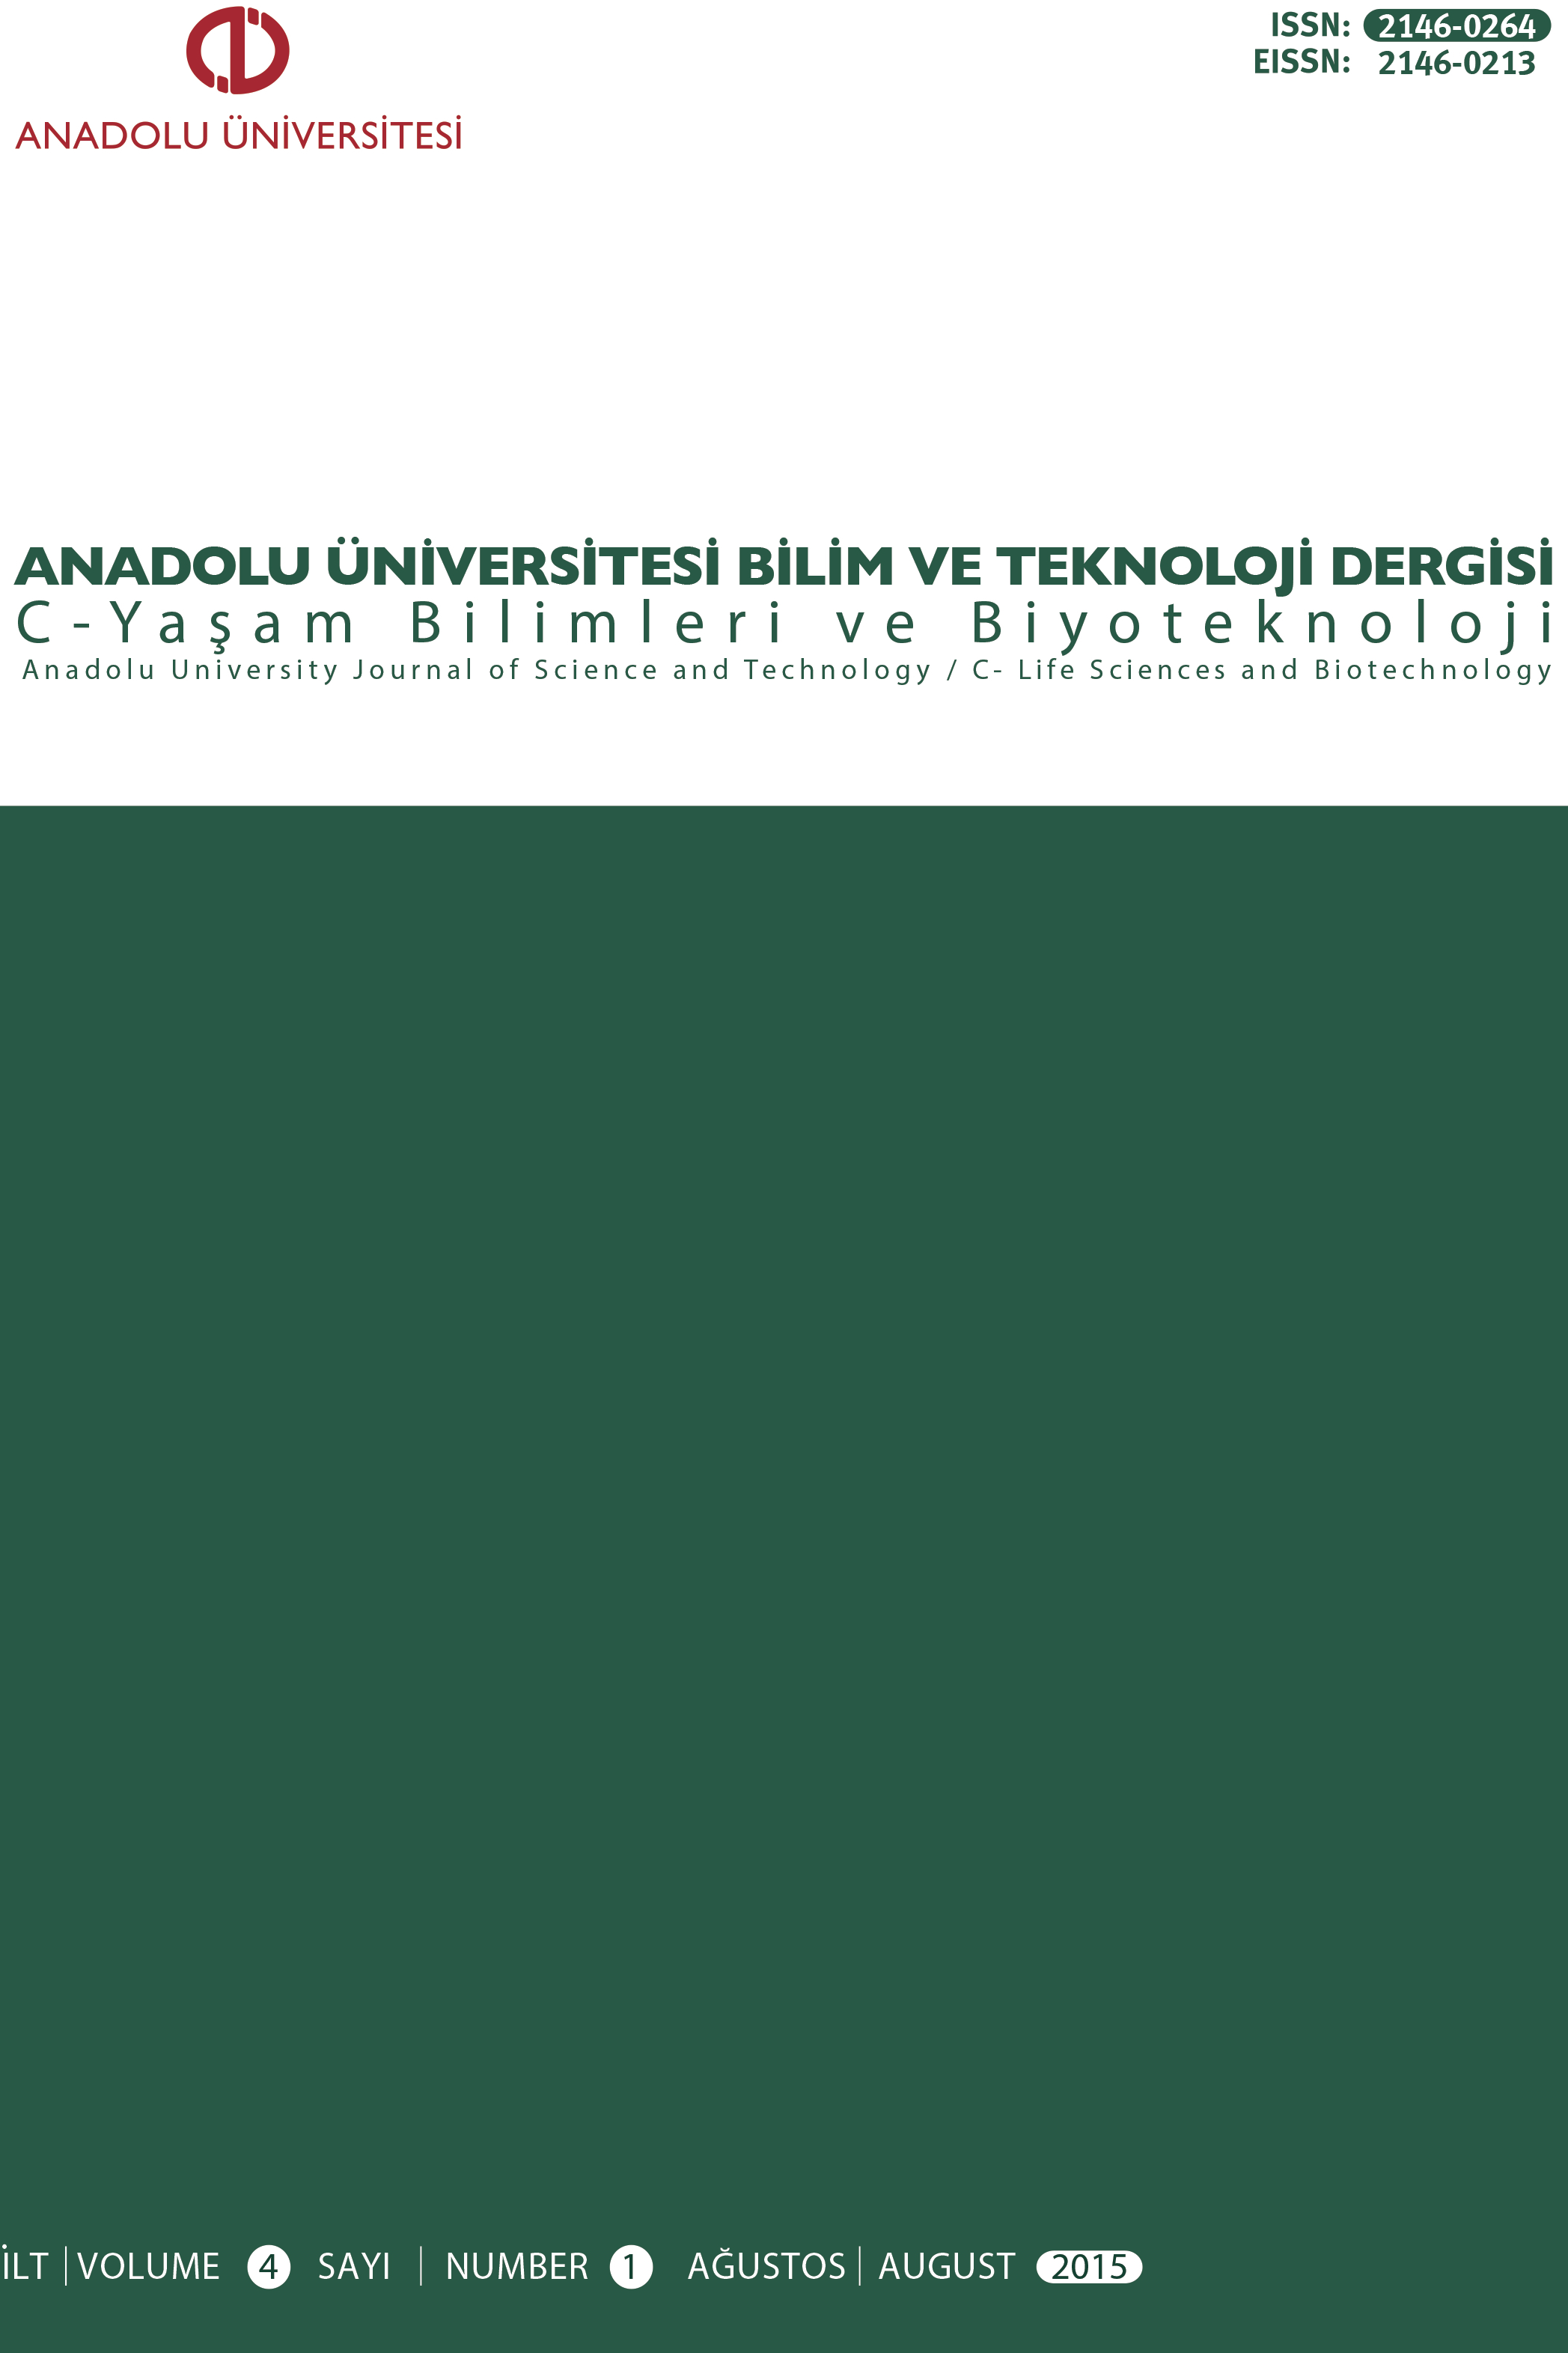 Anadolu University Journal of Science and Technology C - Life Sciences and Biotechnology